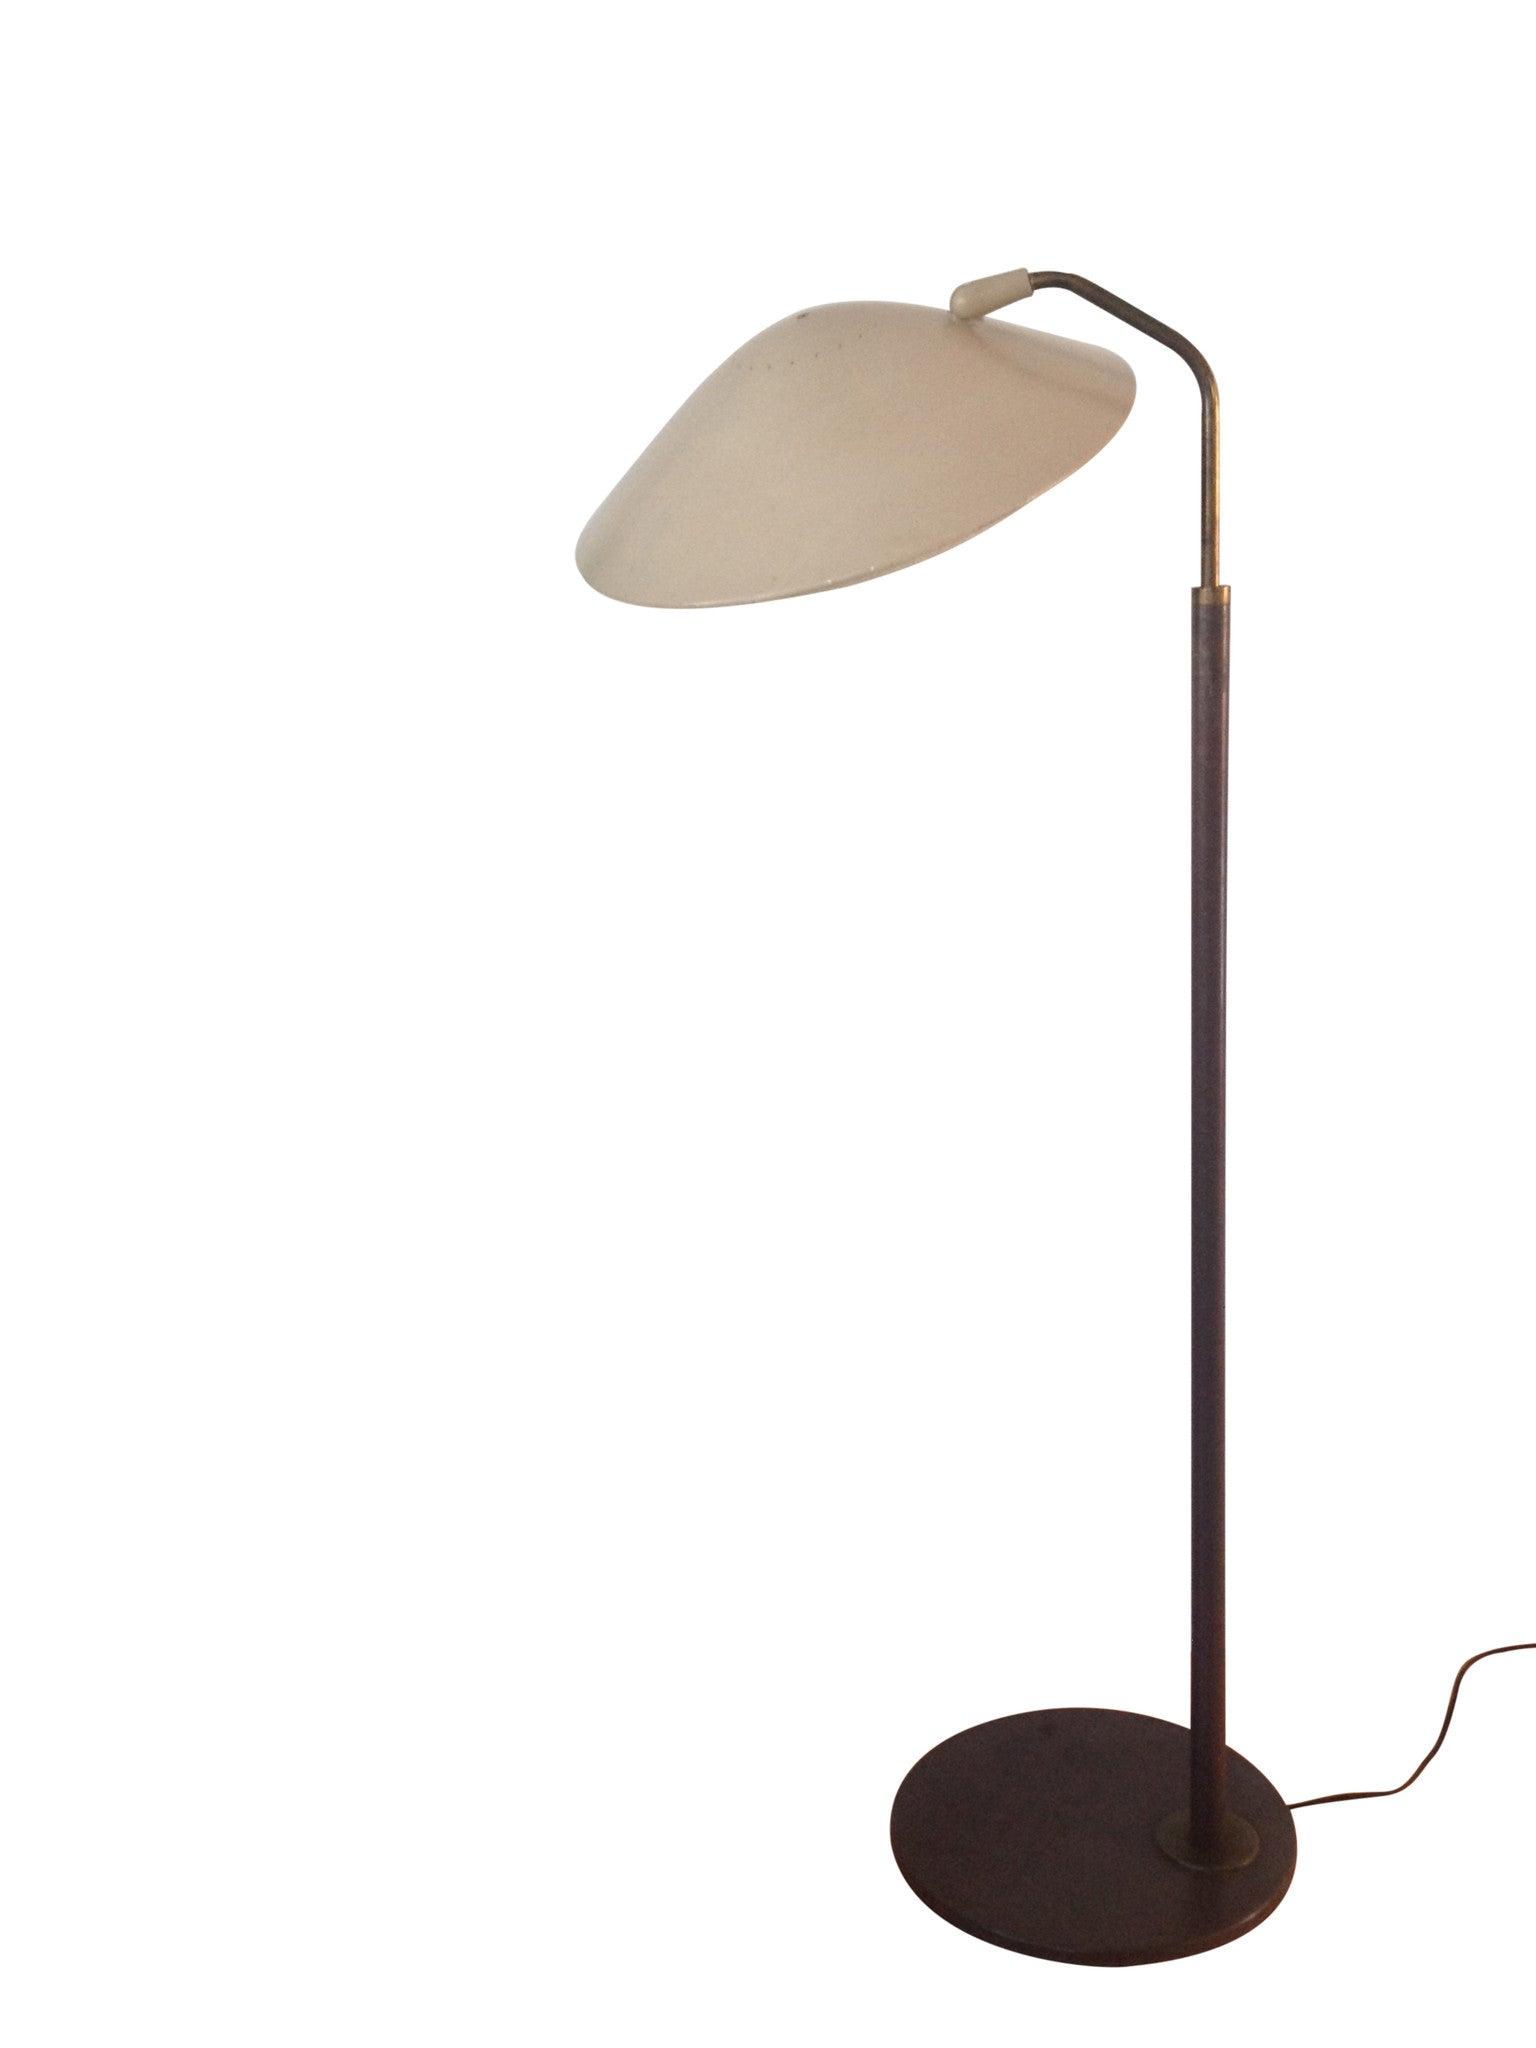 Vintage gerald thurston for lightolier floor lamp barefoot dwelling geotapseo Image collections